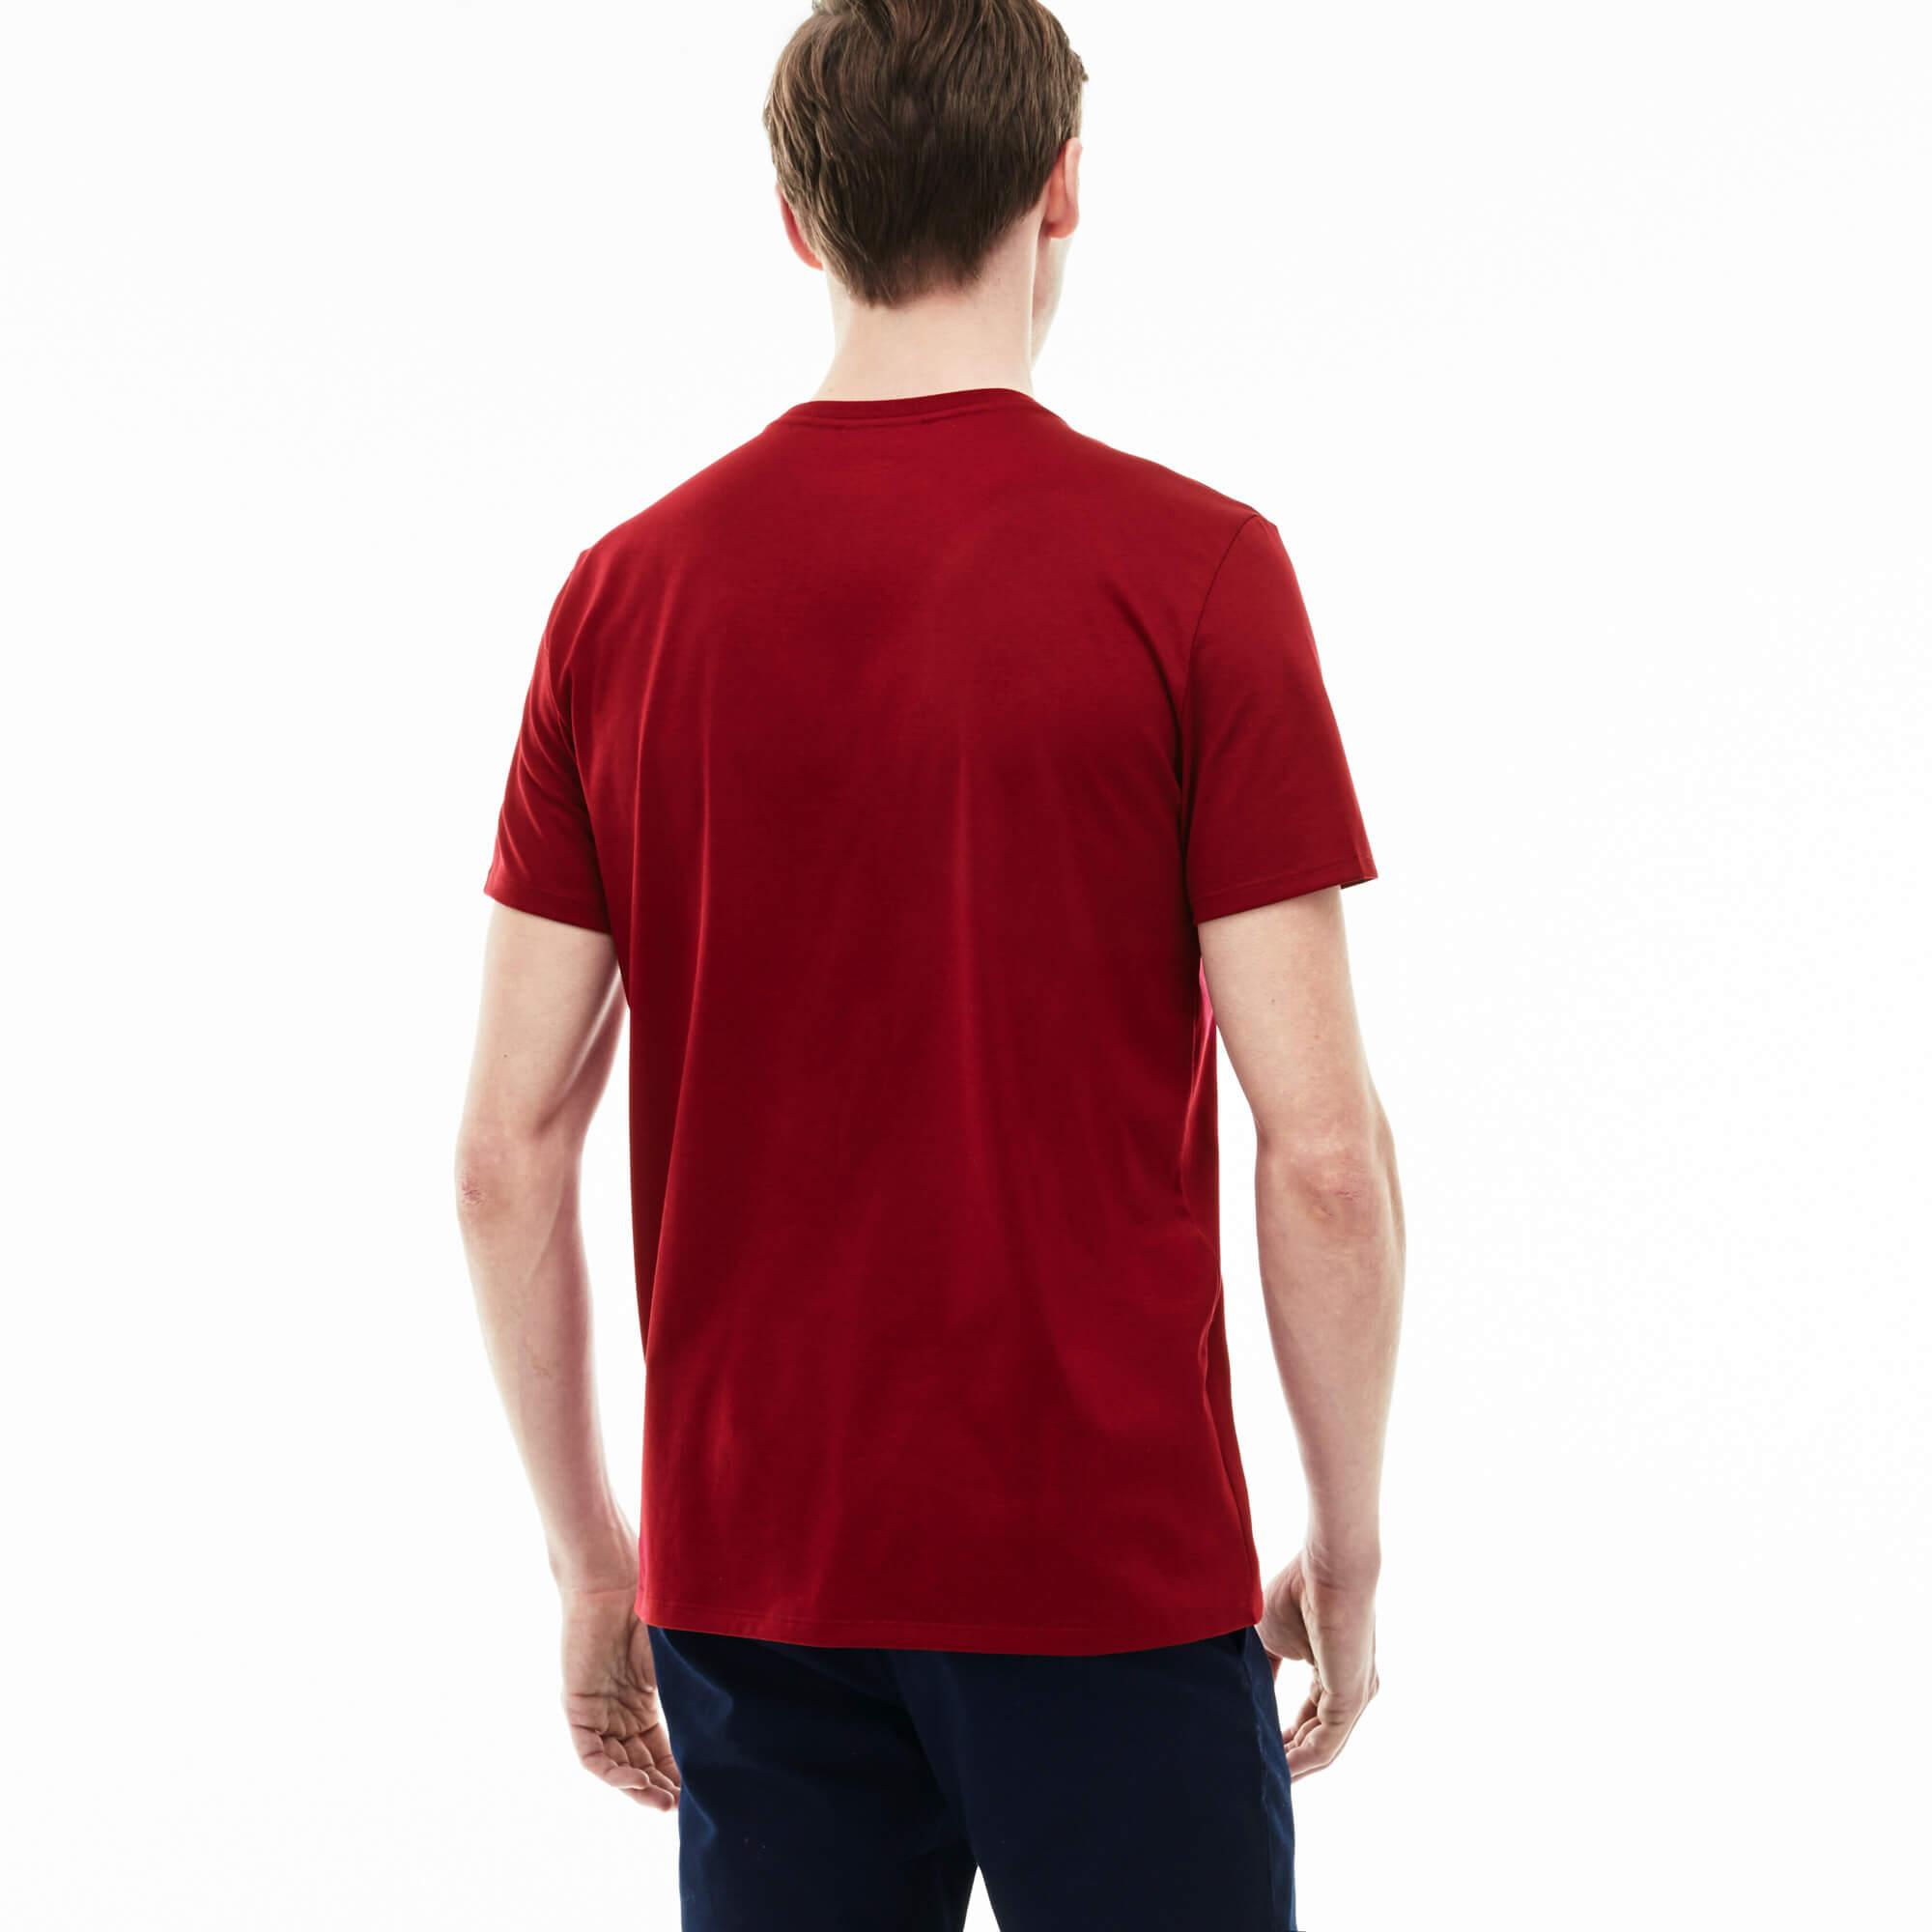 Lacoste Erkek Regular Fit V Yaka Bordo T-Shirt